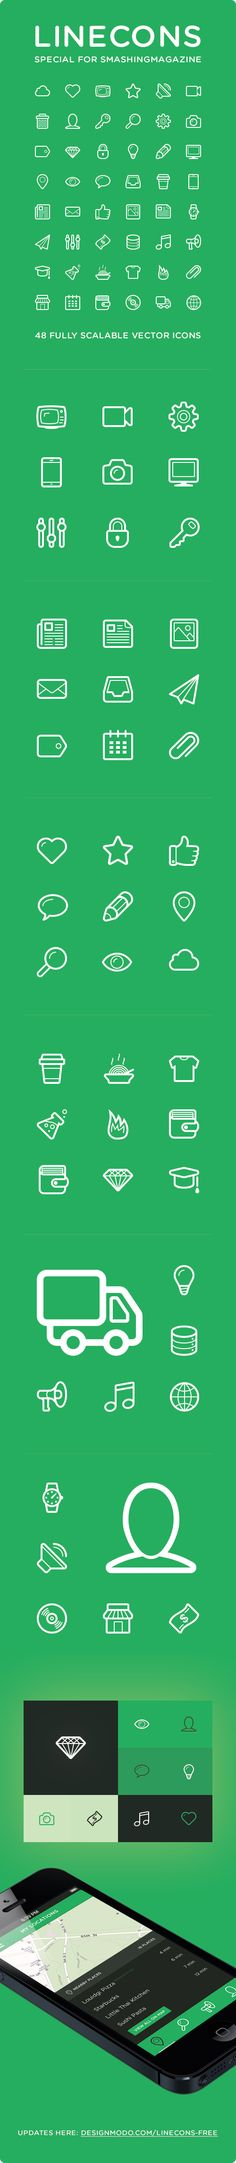 February 2nd, 2013...Polaris UI Kit + Linecons Icon Set (AI, PDF, PNG, PSD, SVG) from Smashing Magazine ...Freebies...We are pleased to feature the Polaris UI icon set that includes useful UI components and 48 beautiful icons. This freebie was created by the team at Designmodo. As usually, you can use the set for all of your projects for free and without any restrictions